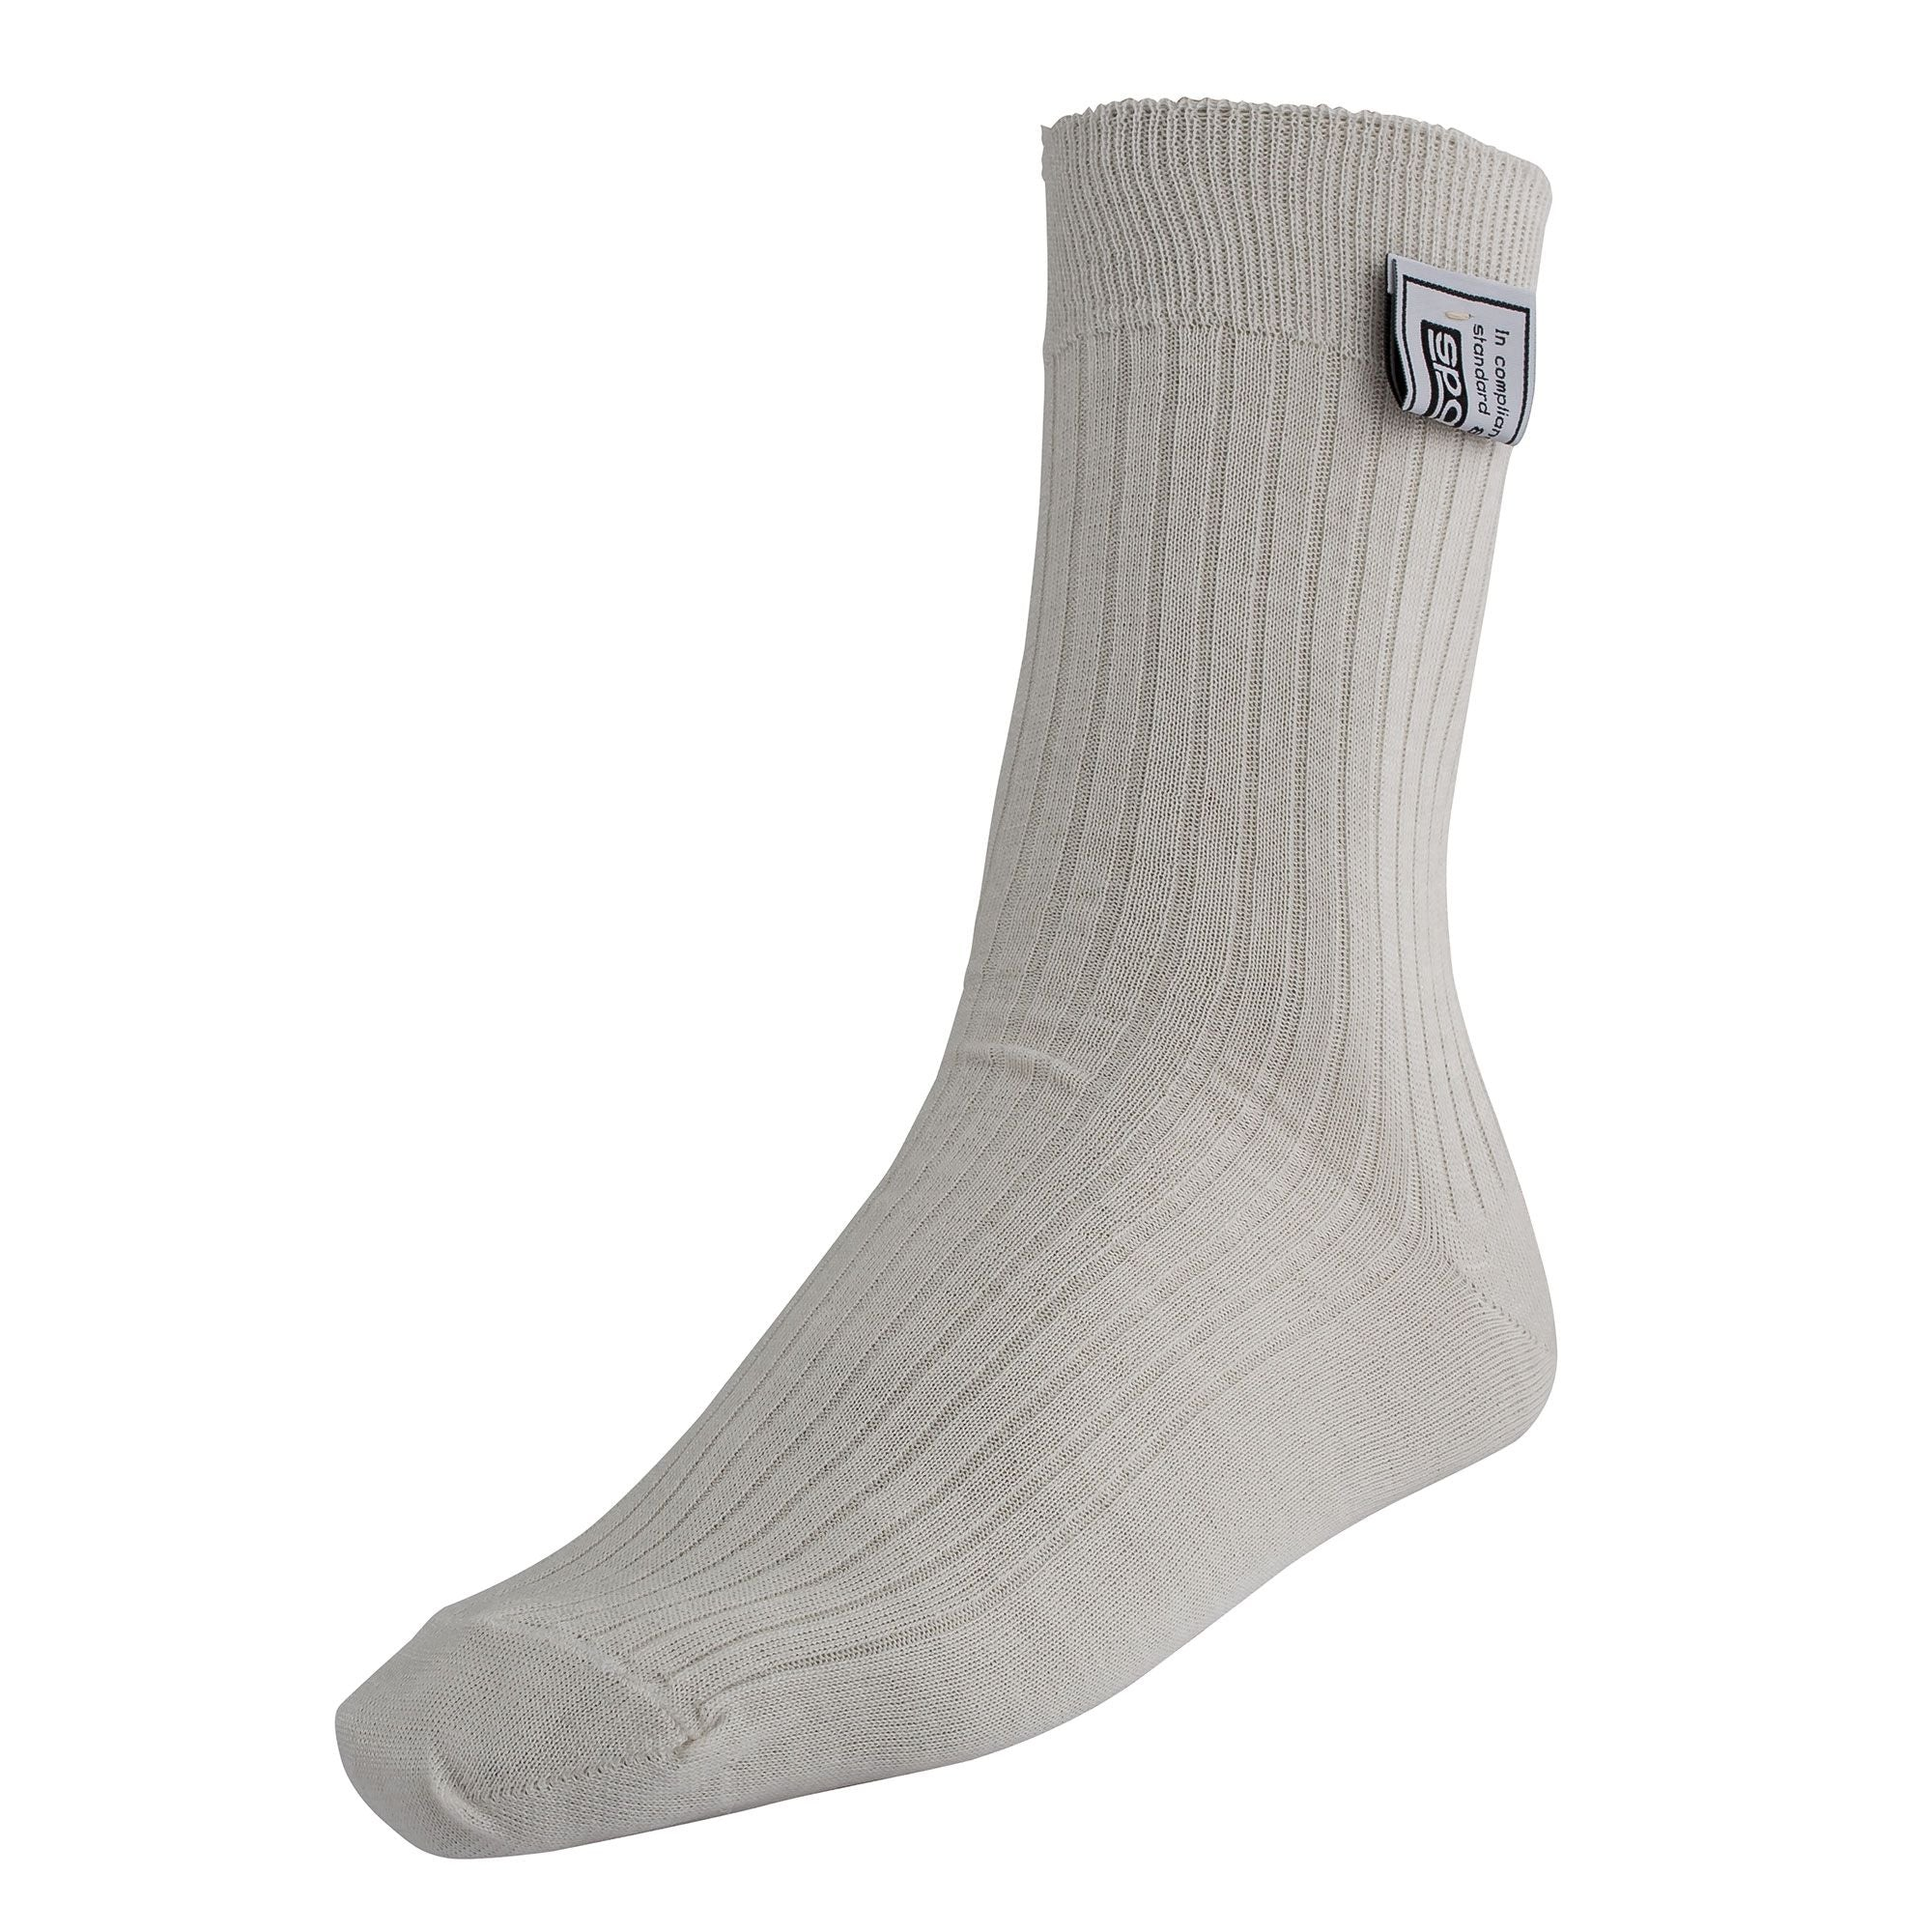 Sparco Guard RW-3 Socks - Saferacer